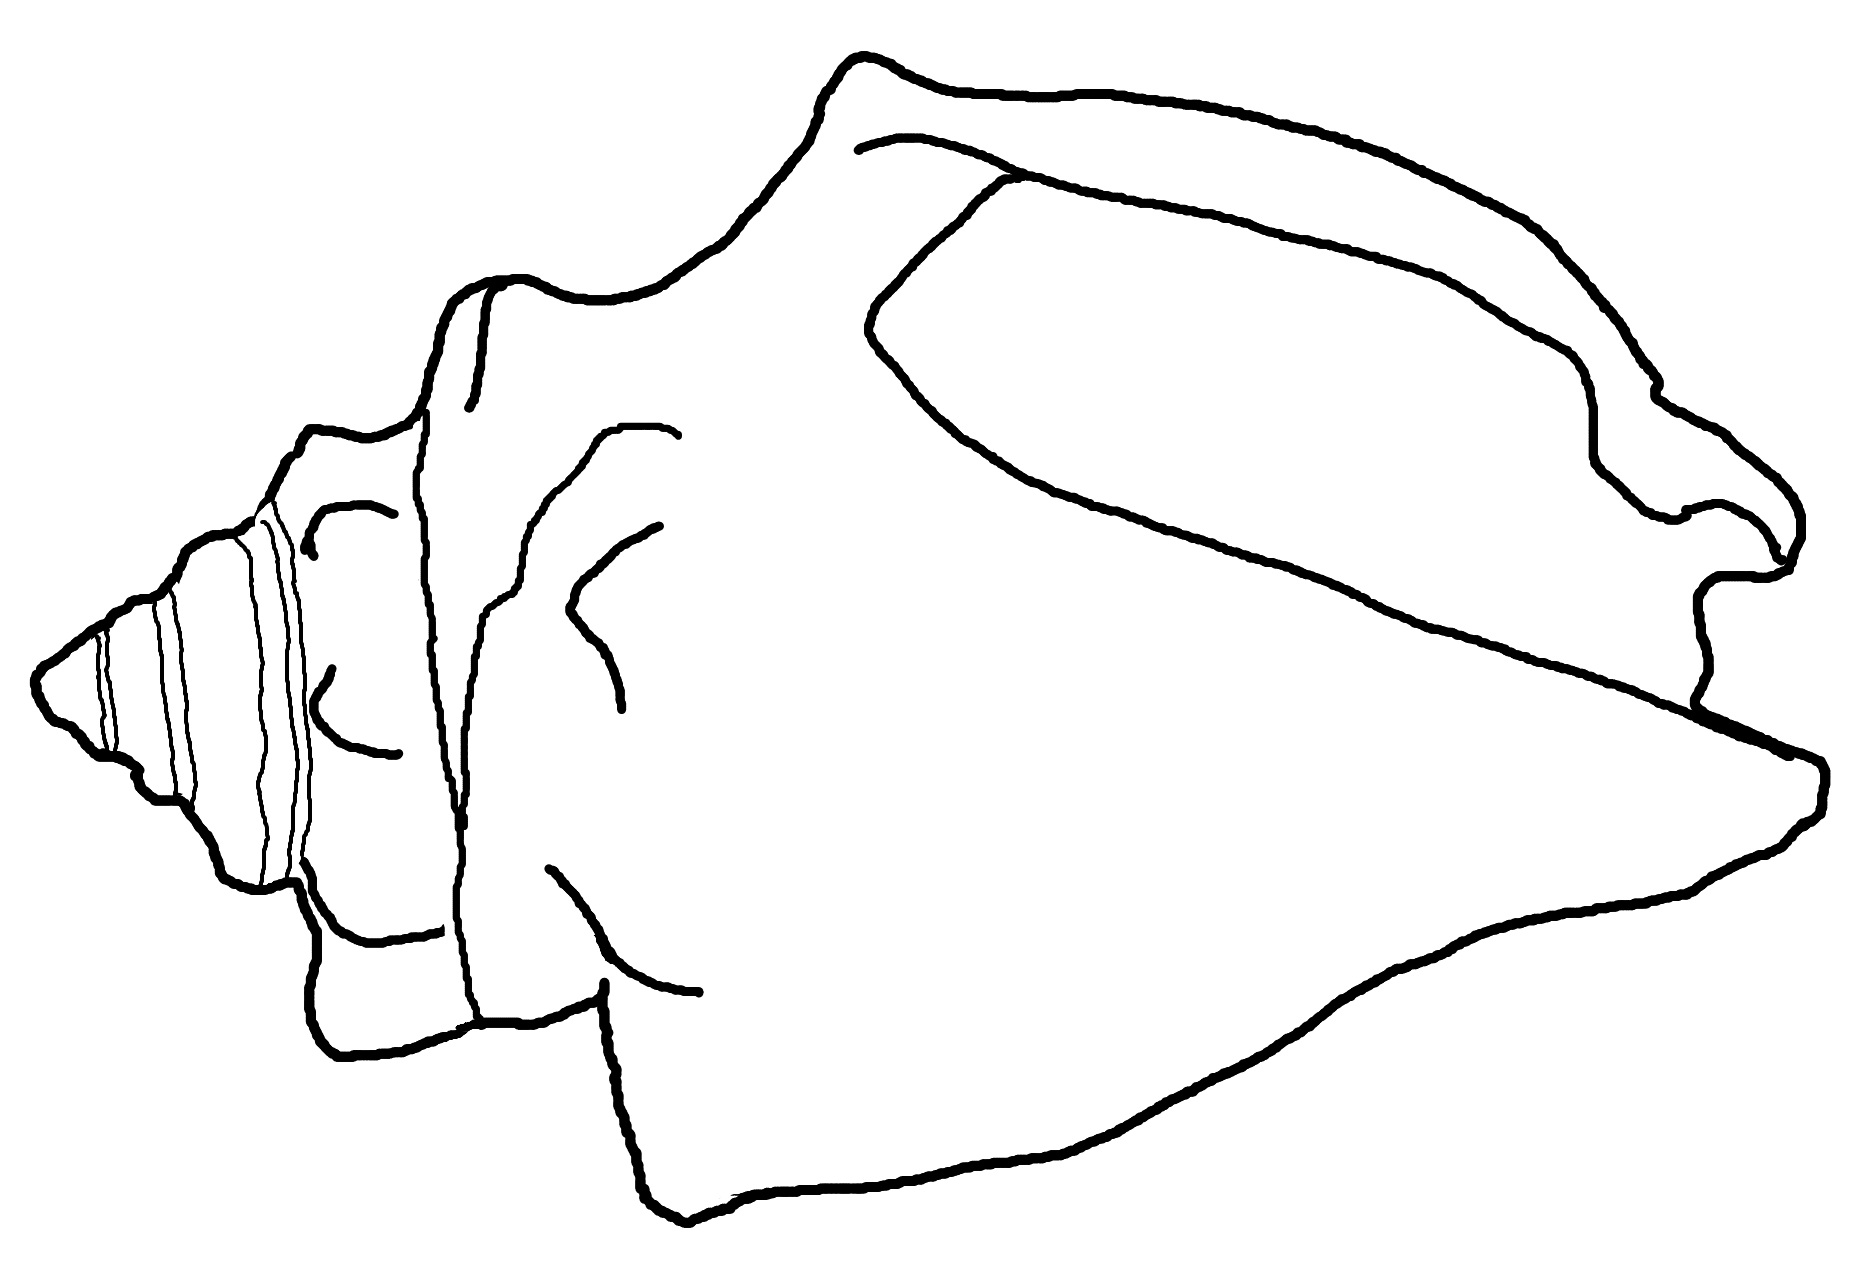 sand coloring pages - photo#36